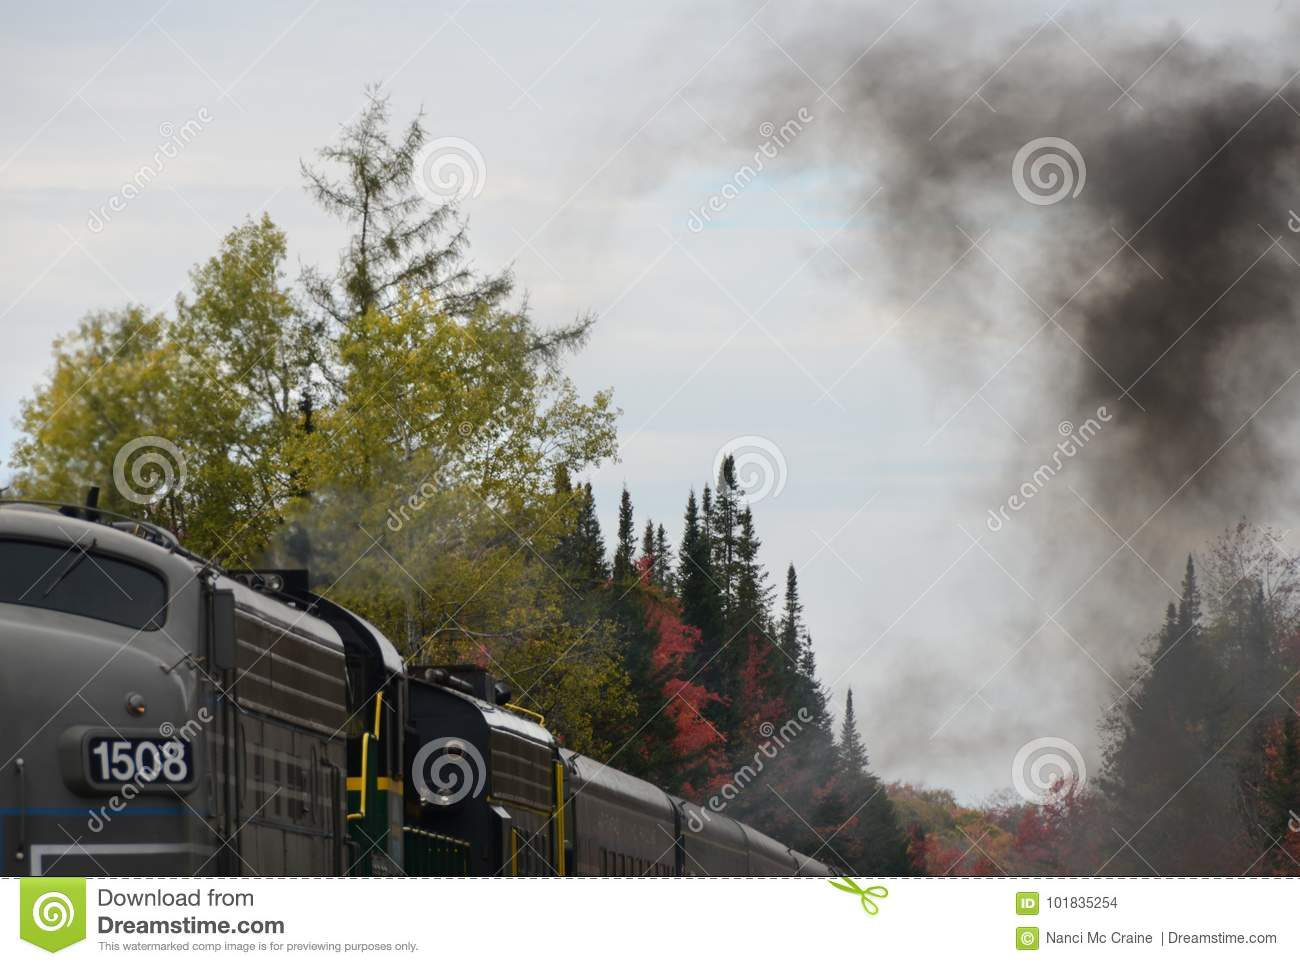 Smoke from burning fuel in the idling locomotive engine.